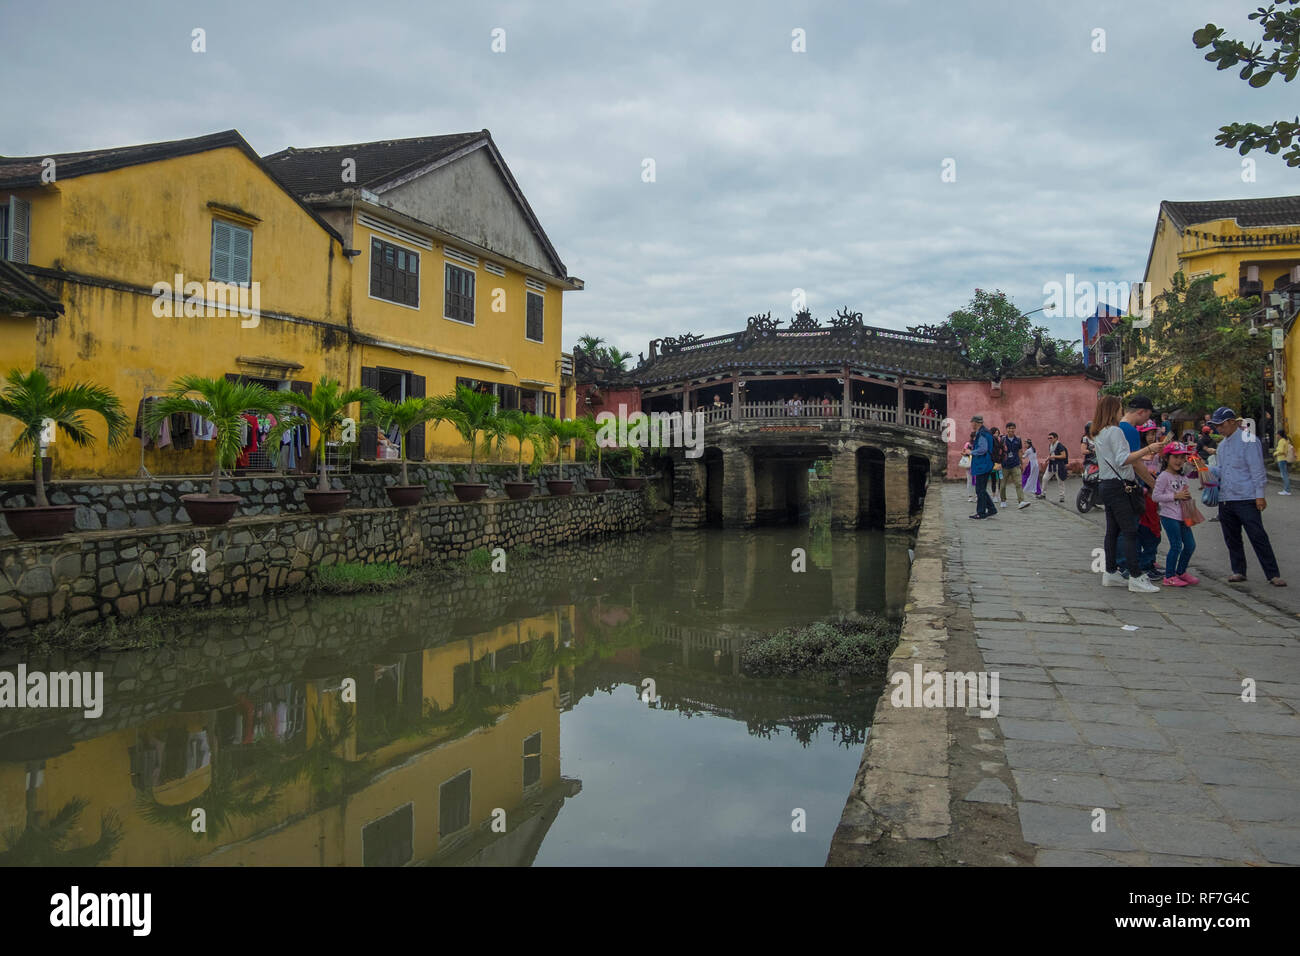 Old Japanese covered wooden bridge in Hoi An, Vietnam. - Stock Image